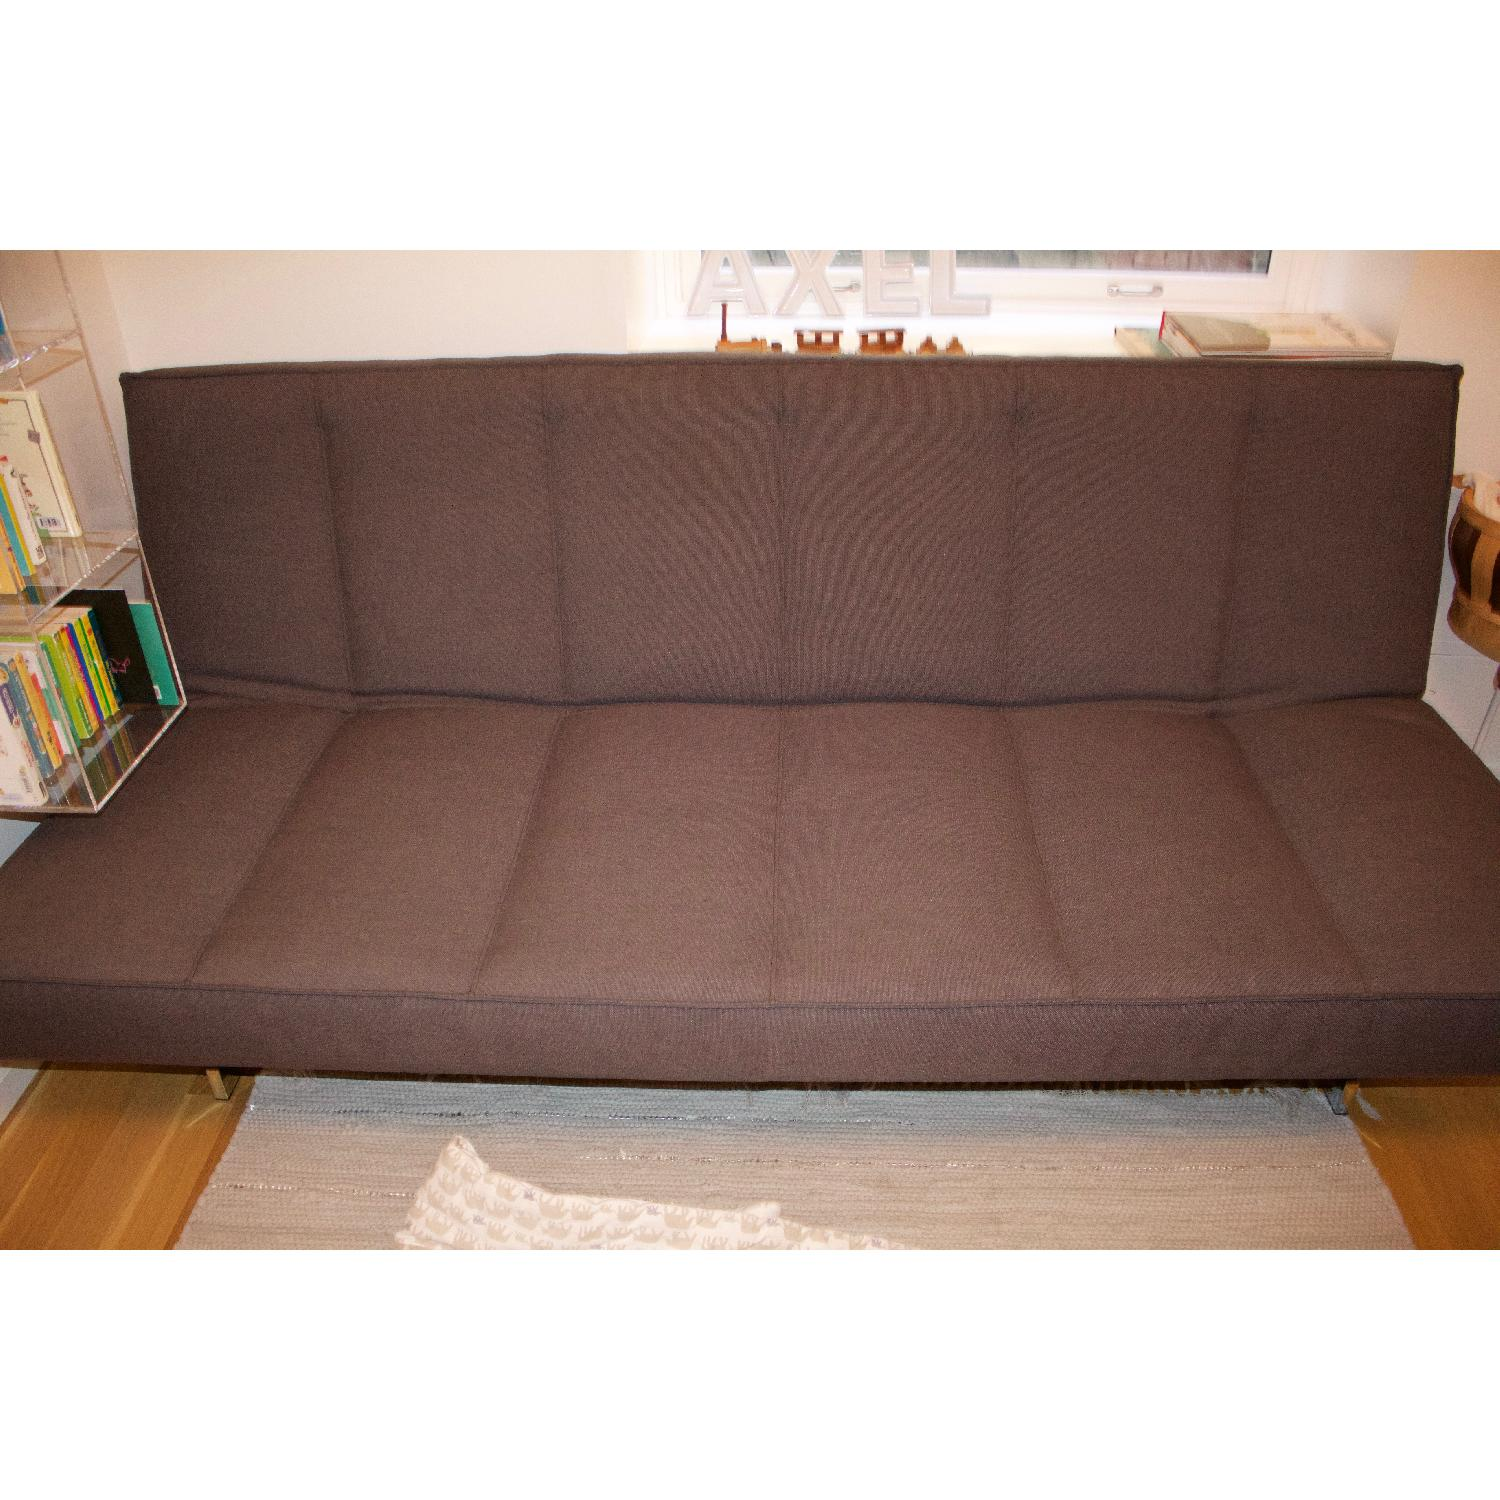 CB2 Flex Gravel Sleeper Sofa - image-20